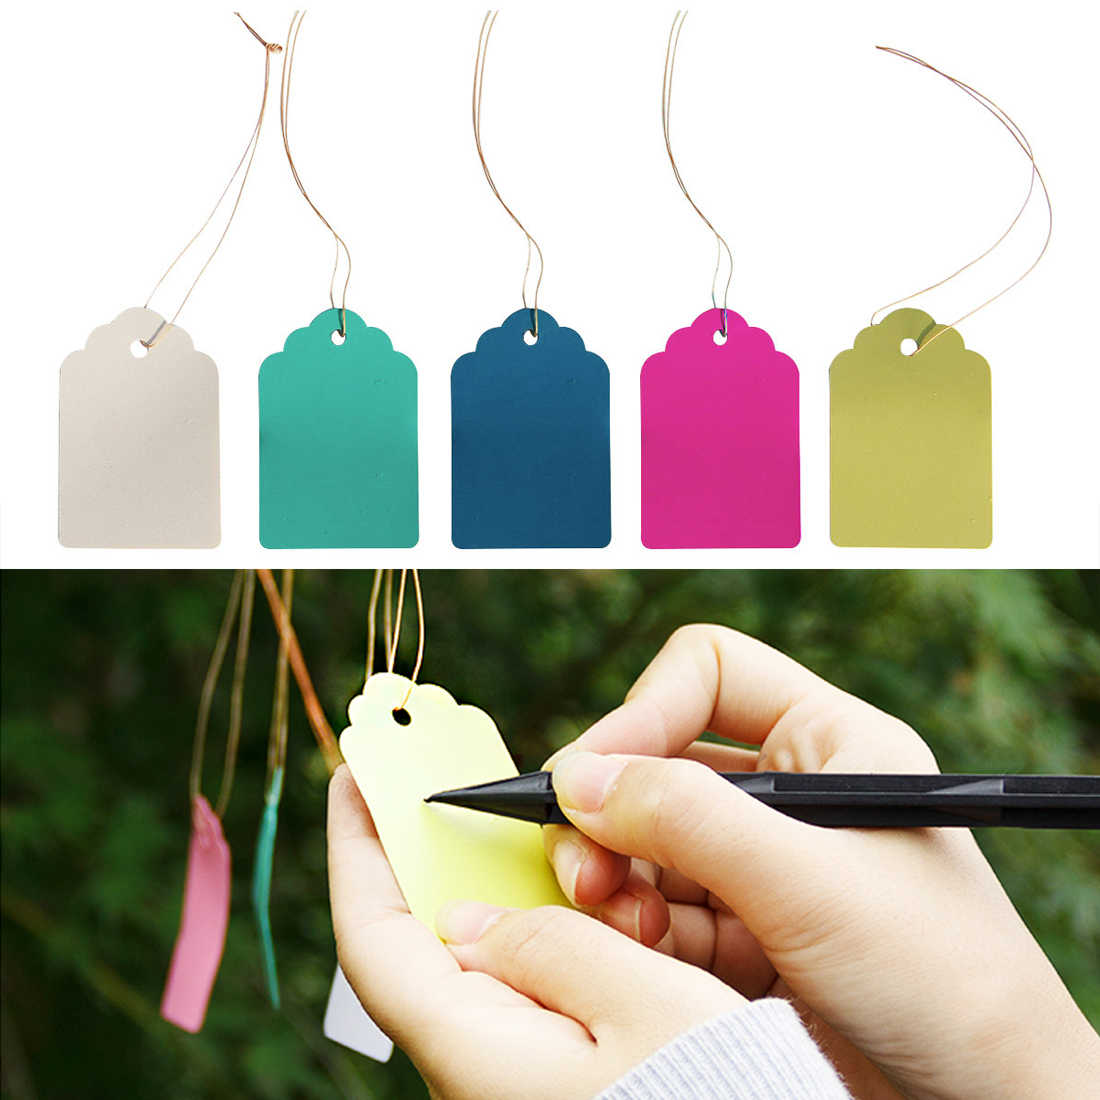 100Pcs Tanaman Label Hang Tag Bibit Taman Pot Bunga Garden Nursery Pot Pekebun Bunga Tebal Tanaman: Label Marker